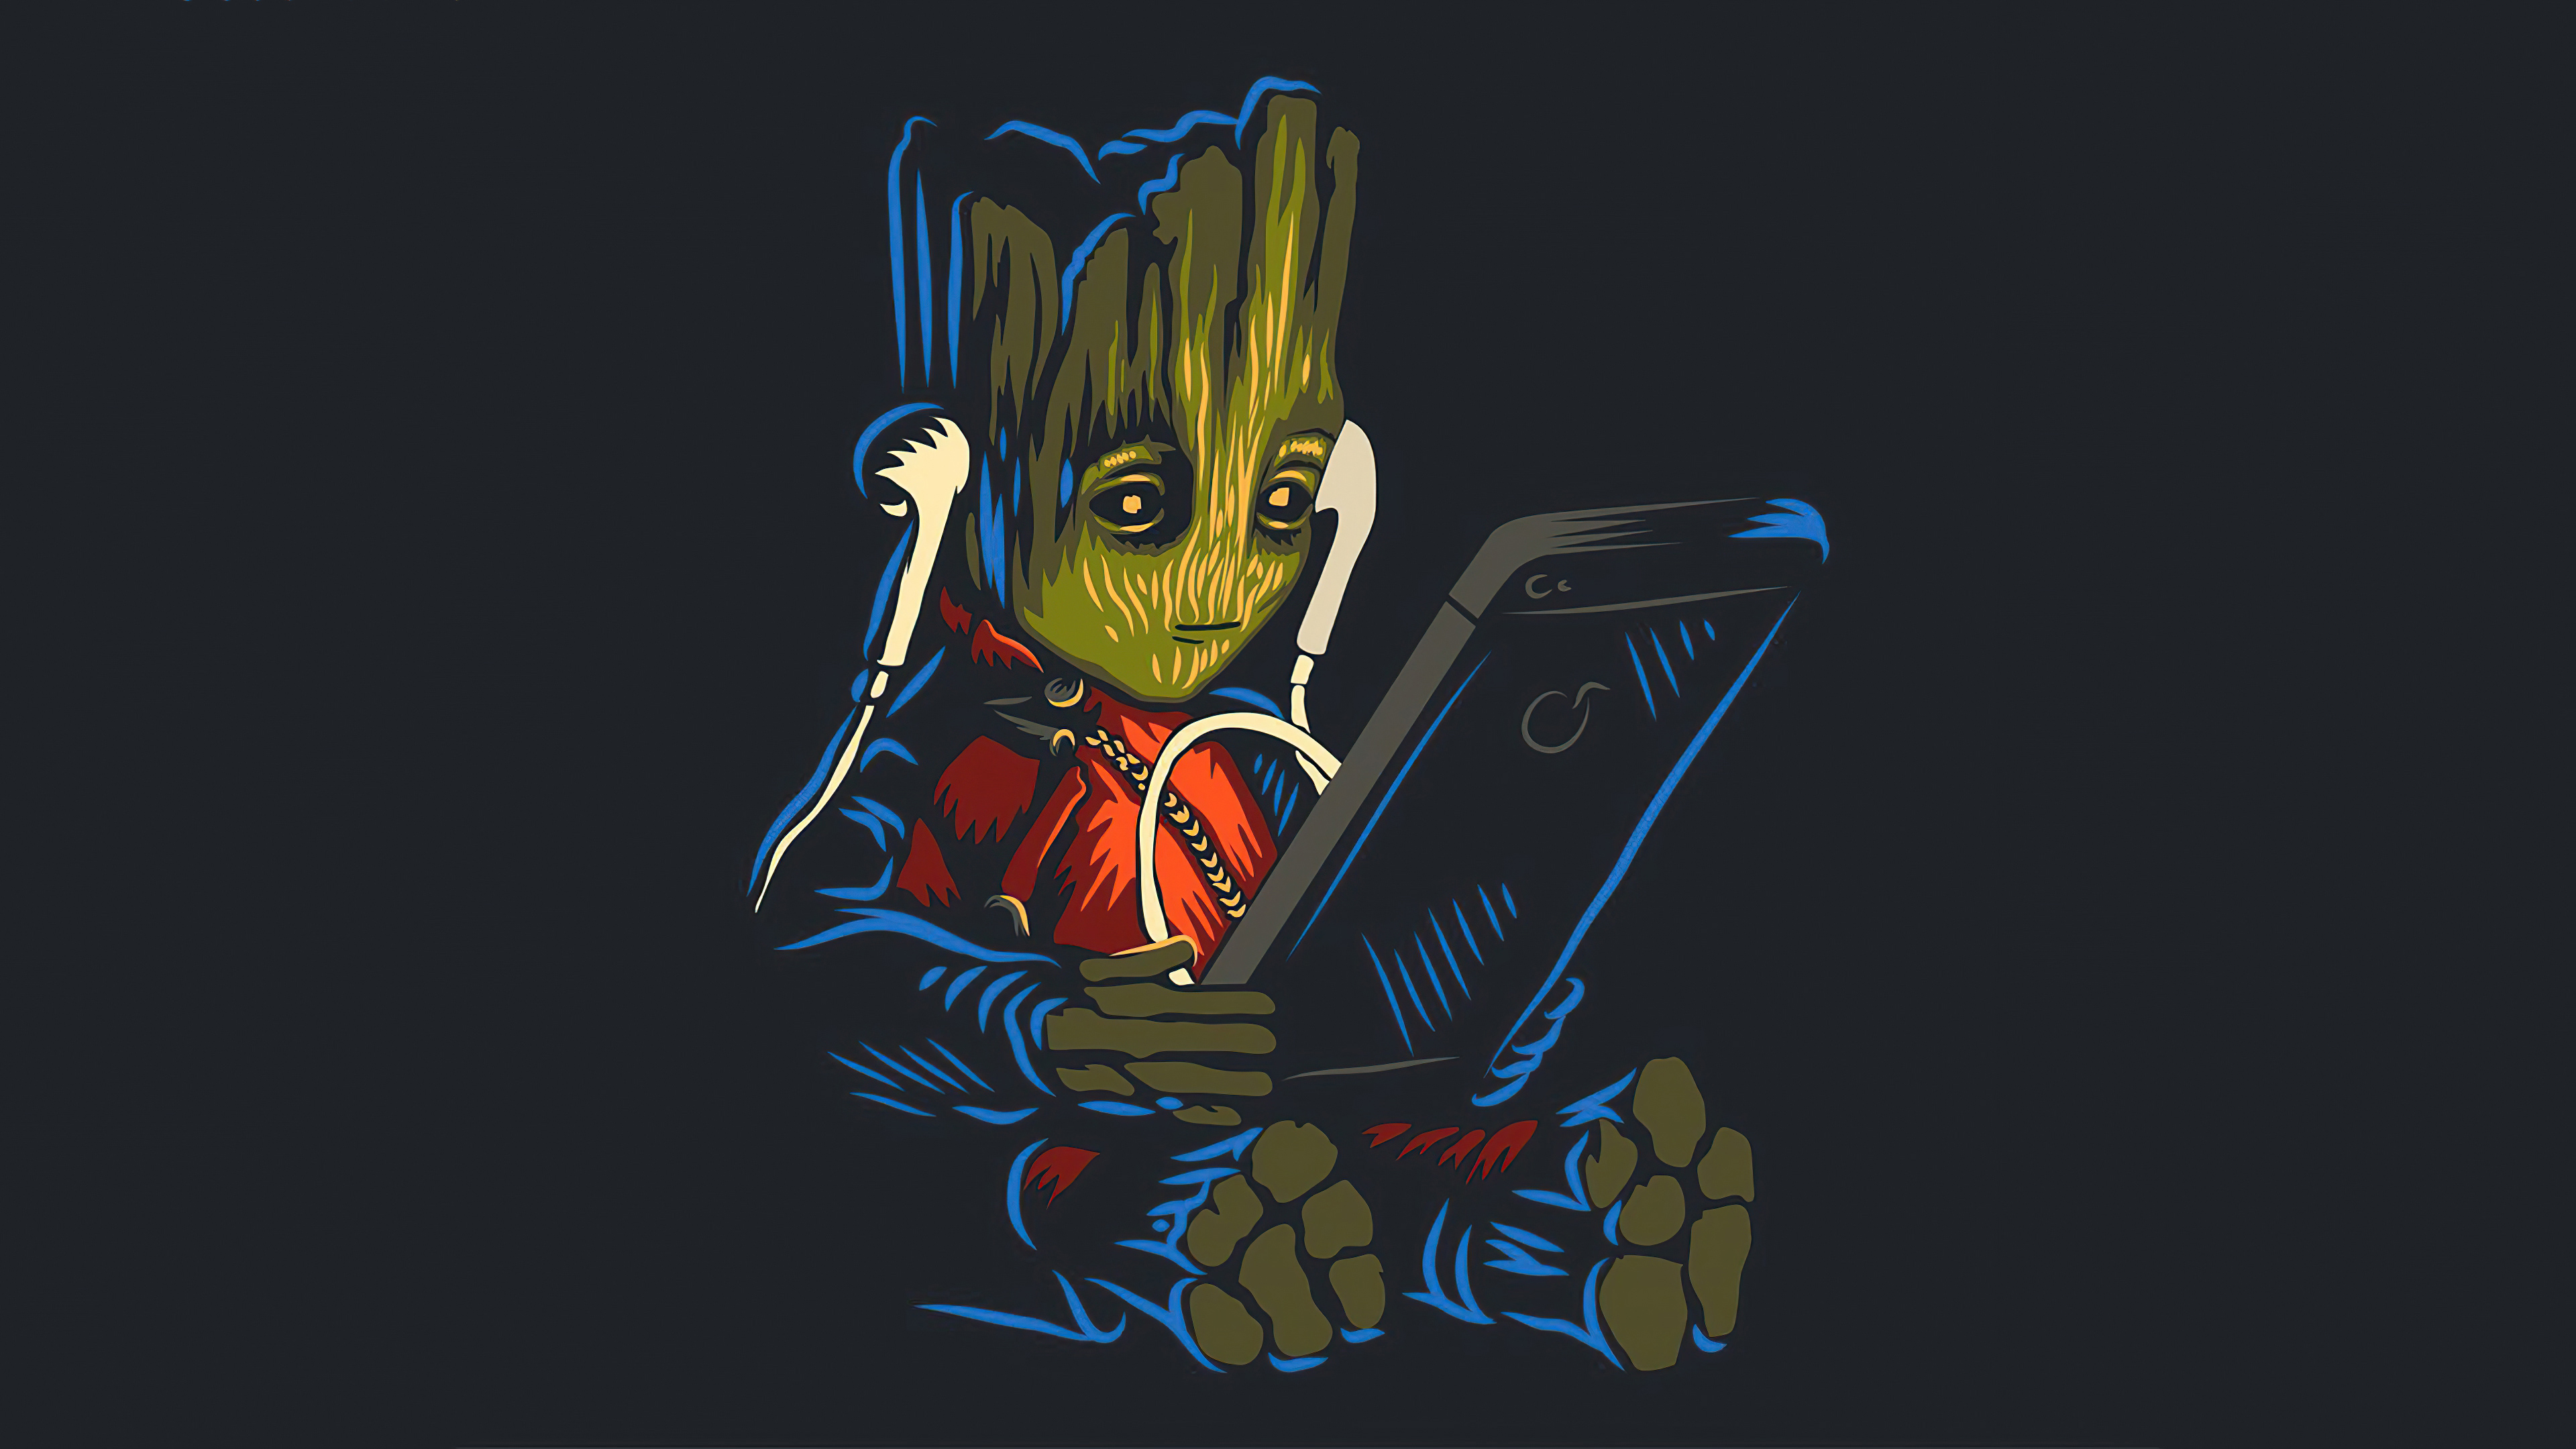 baby groot listening to music while using phone 4k 1604347899 - Baby Groot Listening To Music While Using Phone 4k - Baby Groot Listening To Music While Using Phone 4k wallpapers